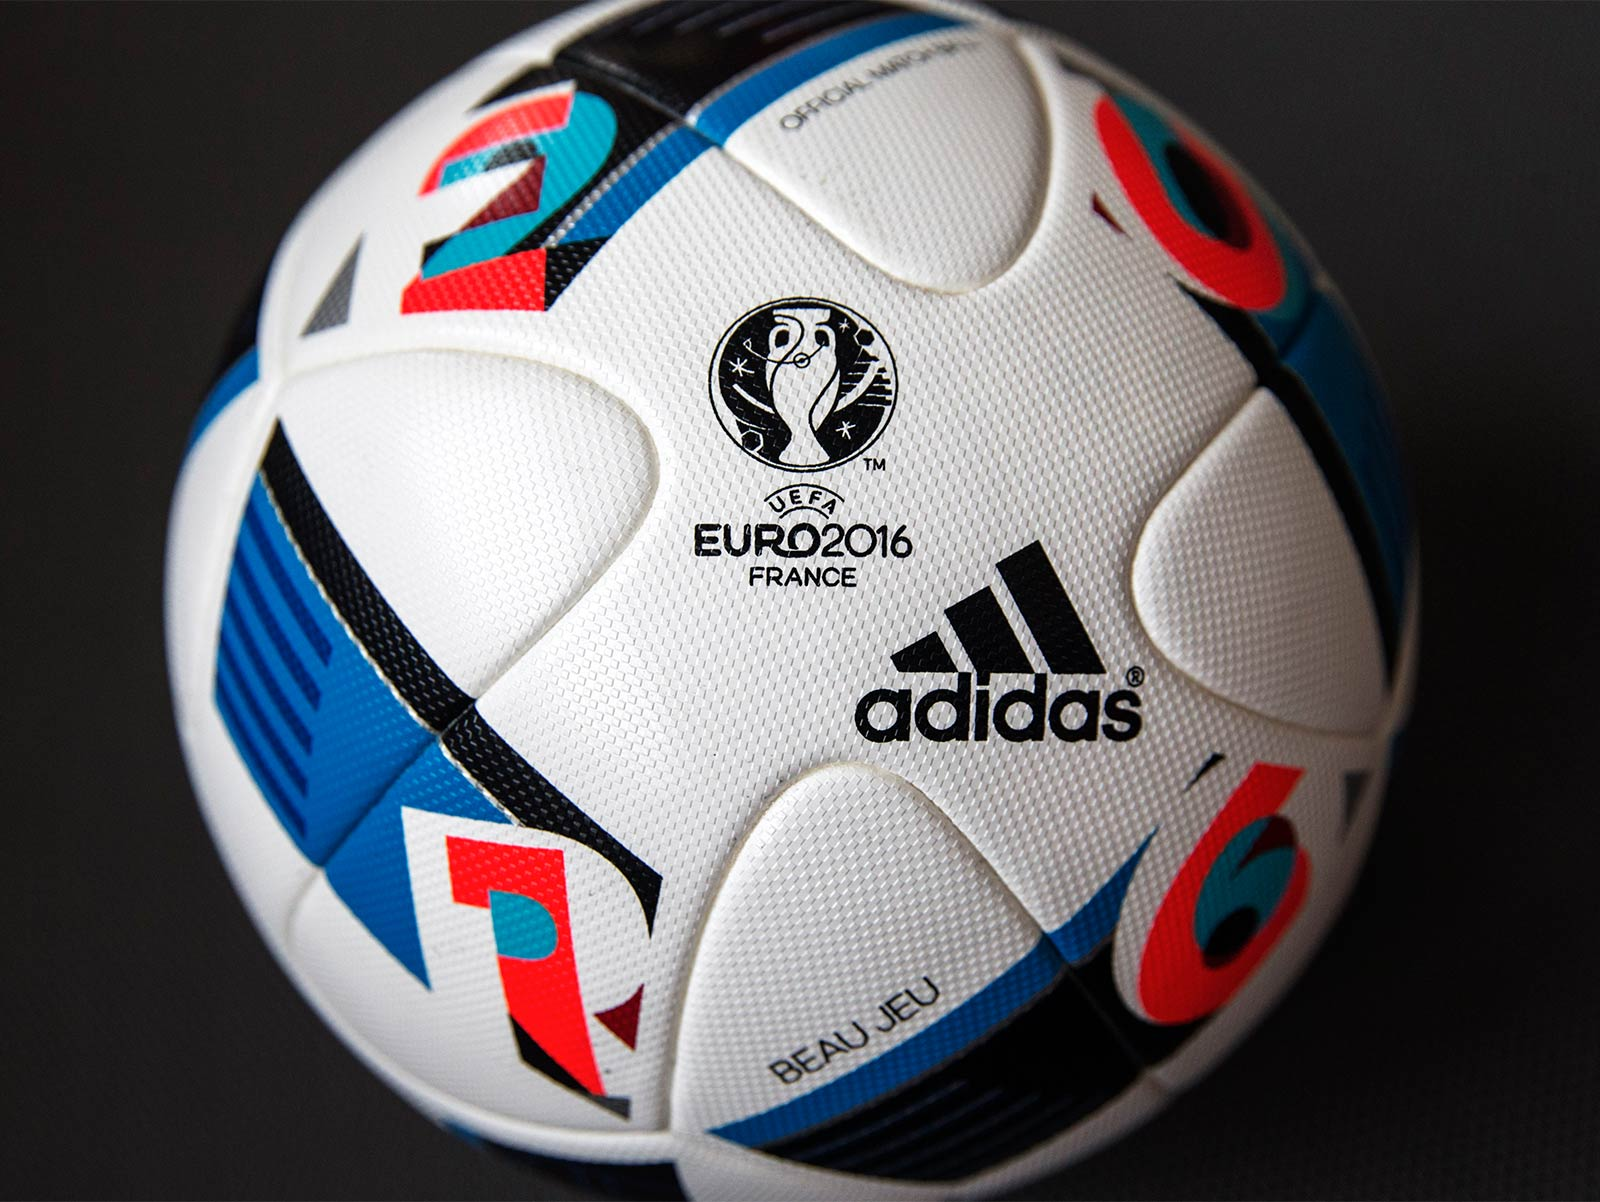 adidas beau jeu euro 2016 ball released footy headlines. Black Bedroom Furniture Sets. Home Design Ideas